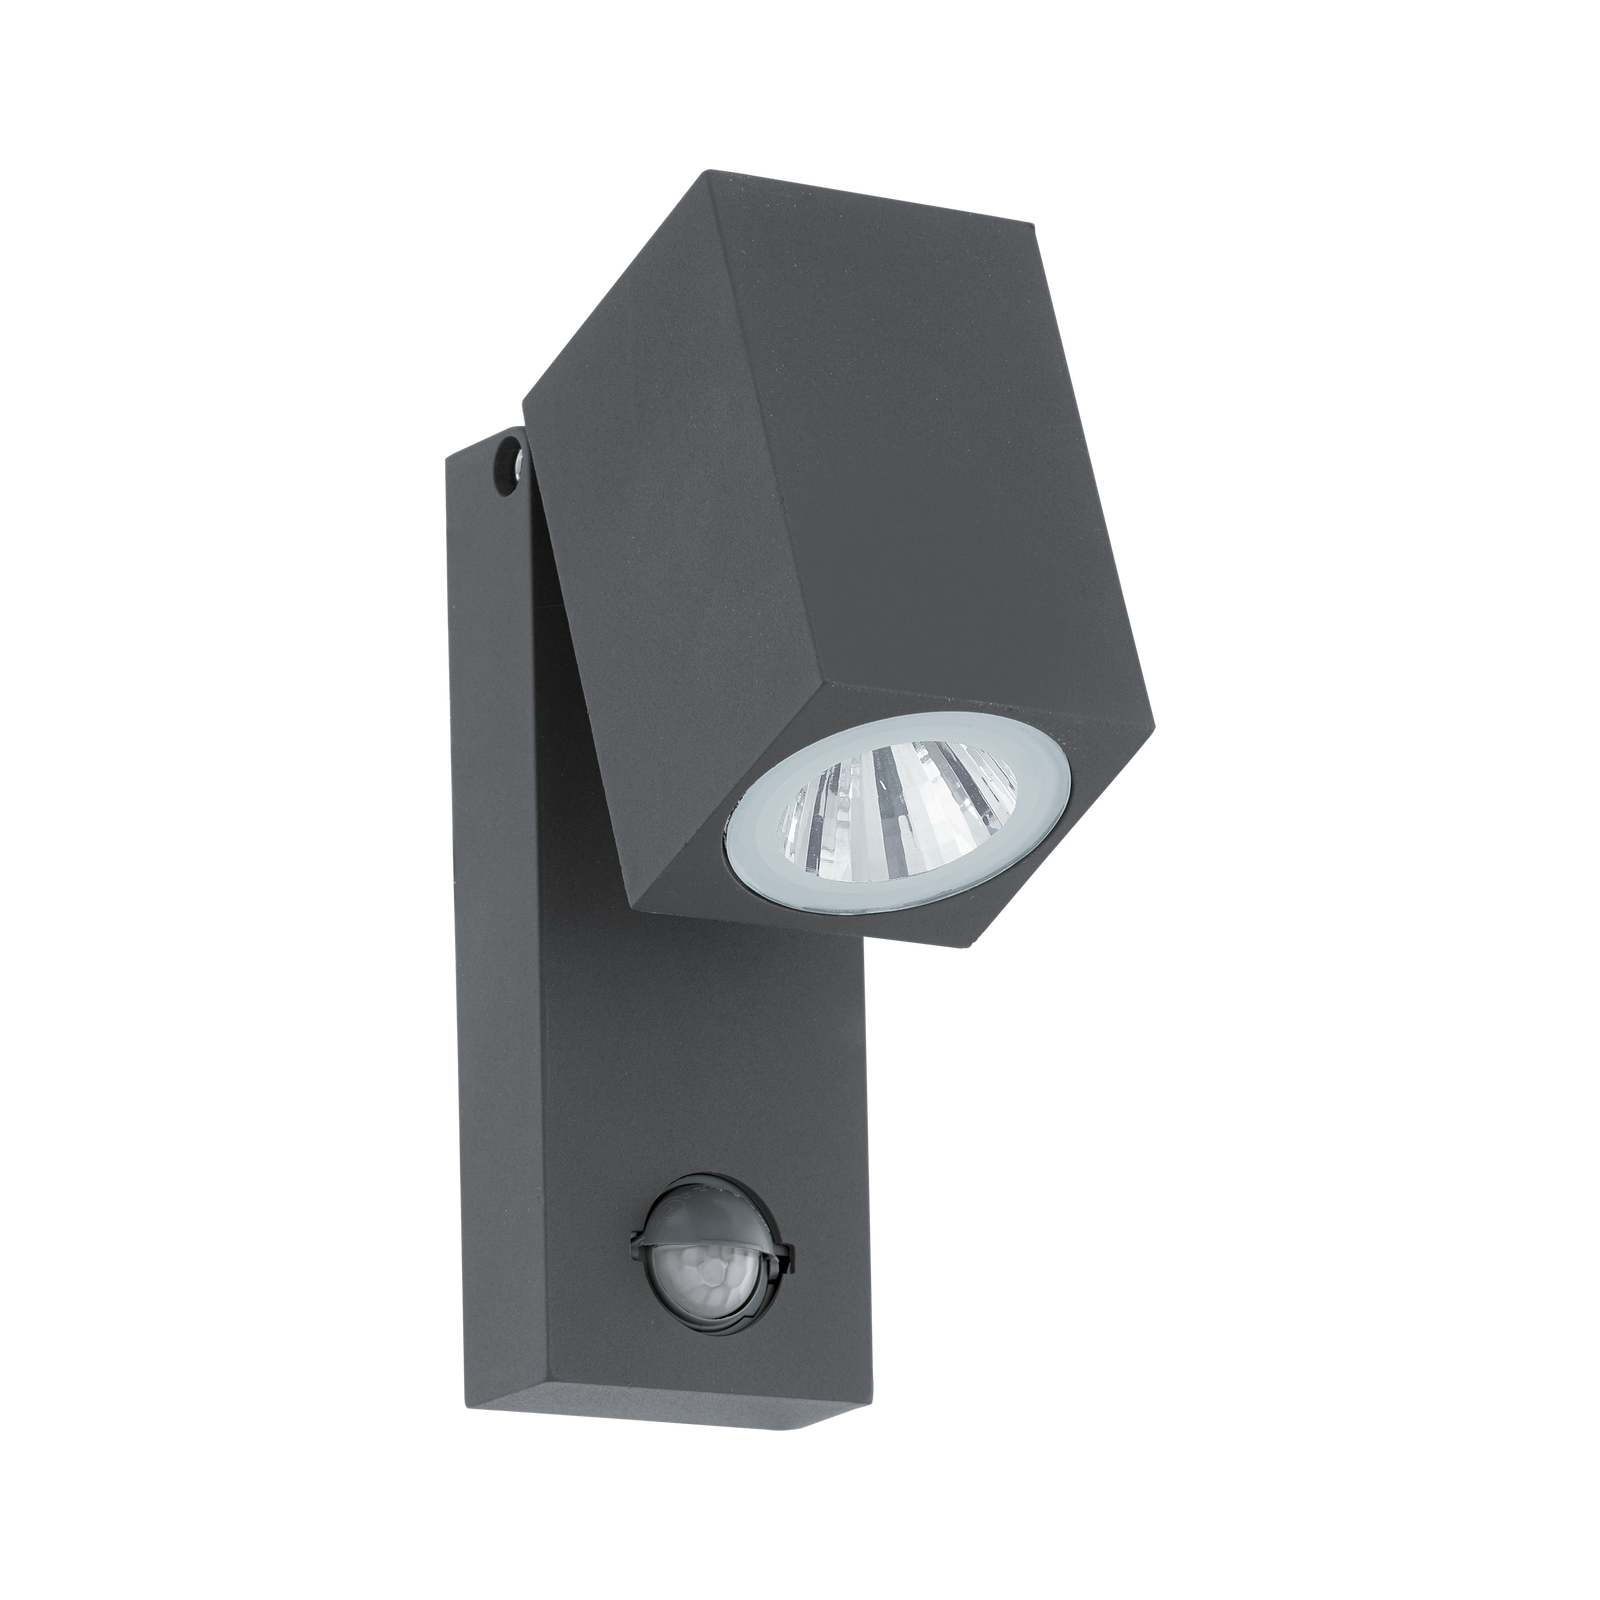 Sakeda outdoor security led wall light lightinguk sakeda outdoor security led wall light aloadofball Gallery